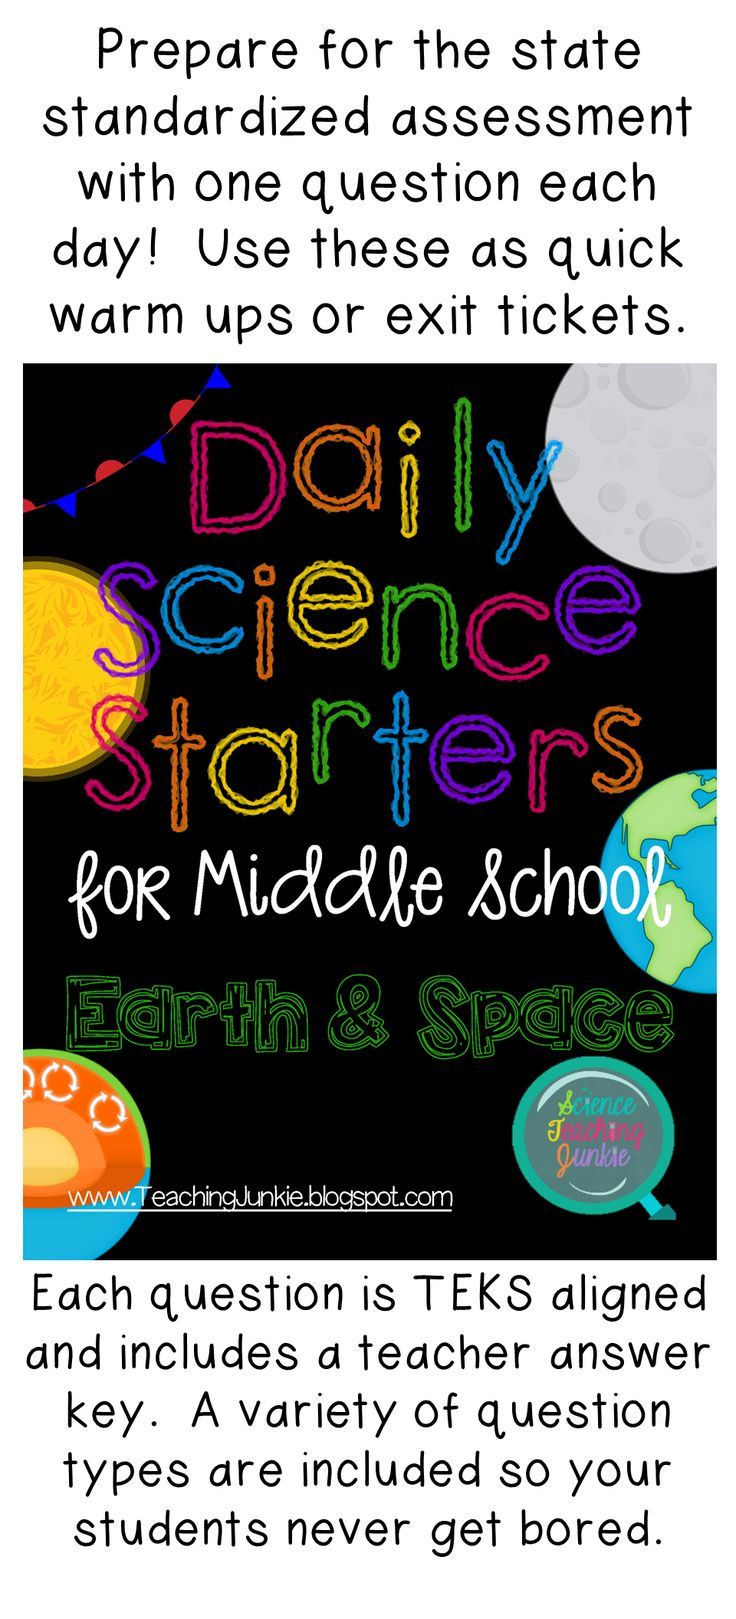 55 quick daily warm-ups or exit tickets that are TEKS aligned!  Prepare your students for the state standardized assessment one day at a time with this product that is part of a Daily Science Starters series from the Science Teaching Junkie.